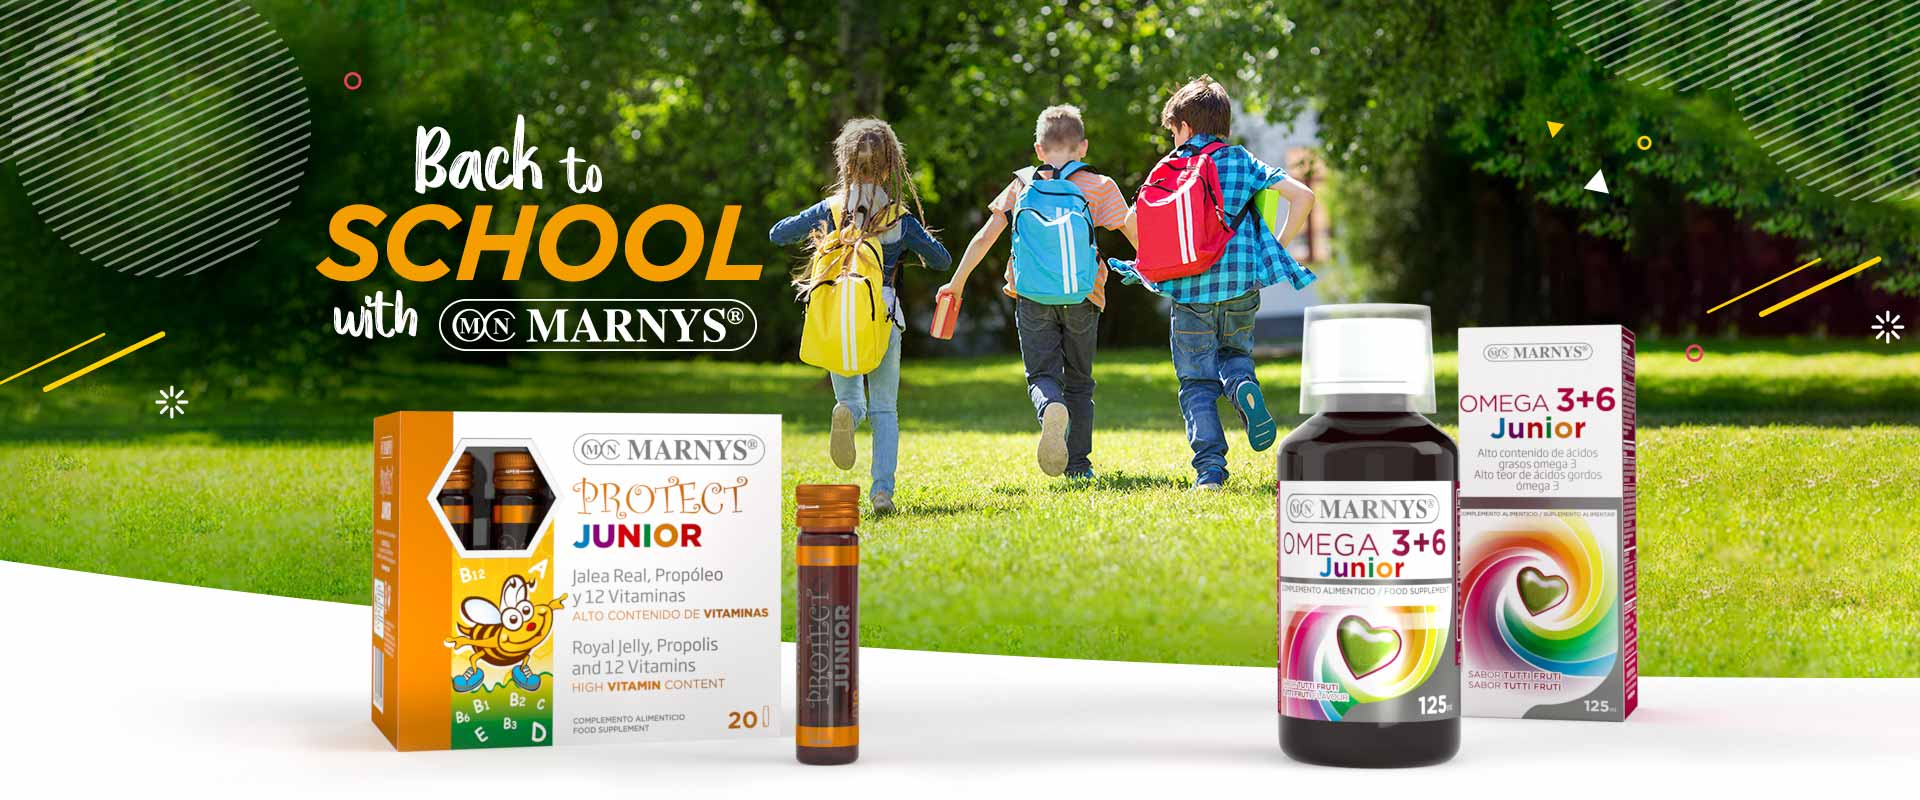 Back to school with Marnys